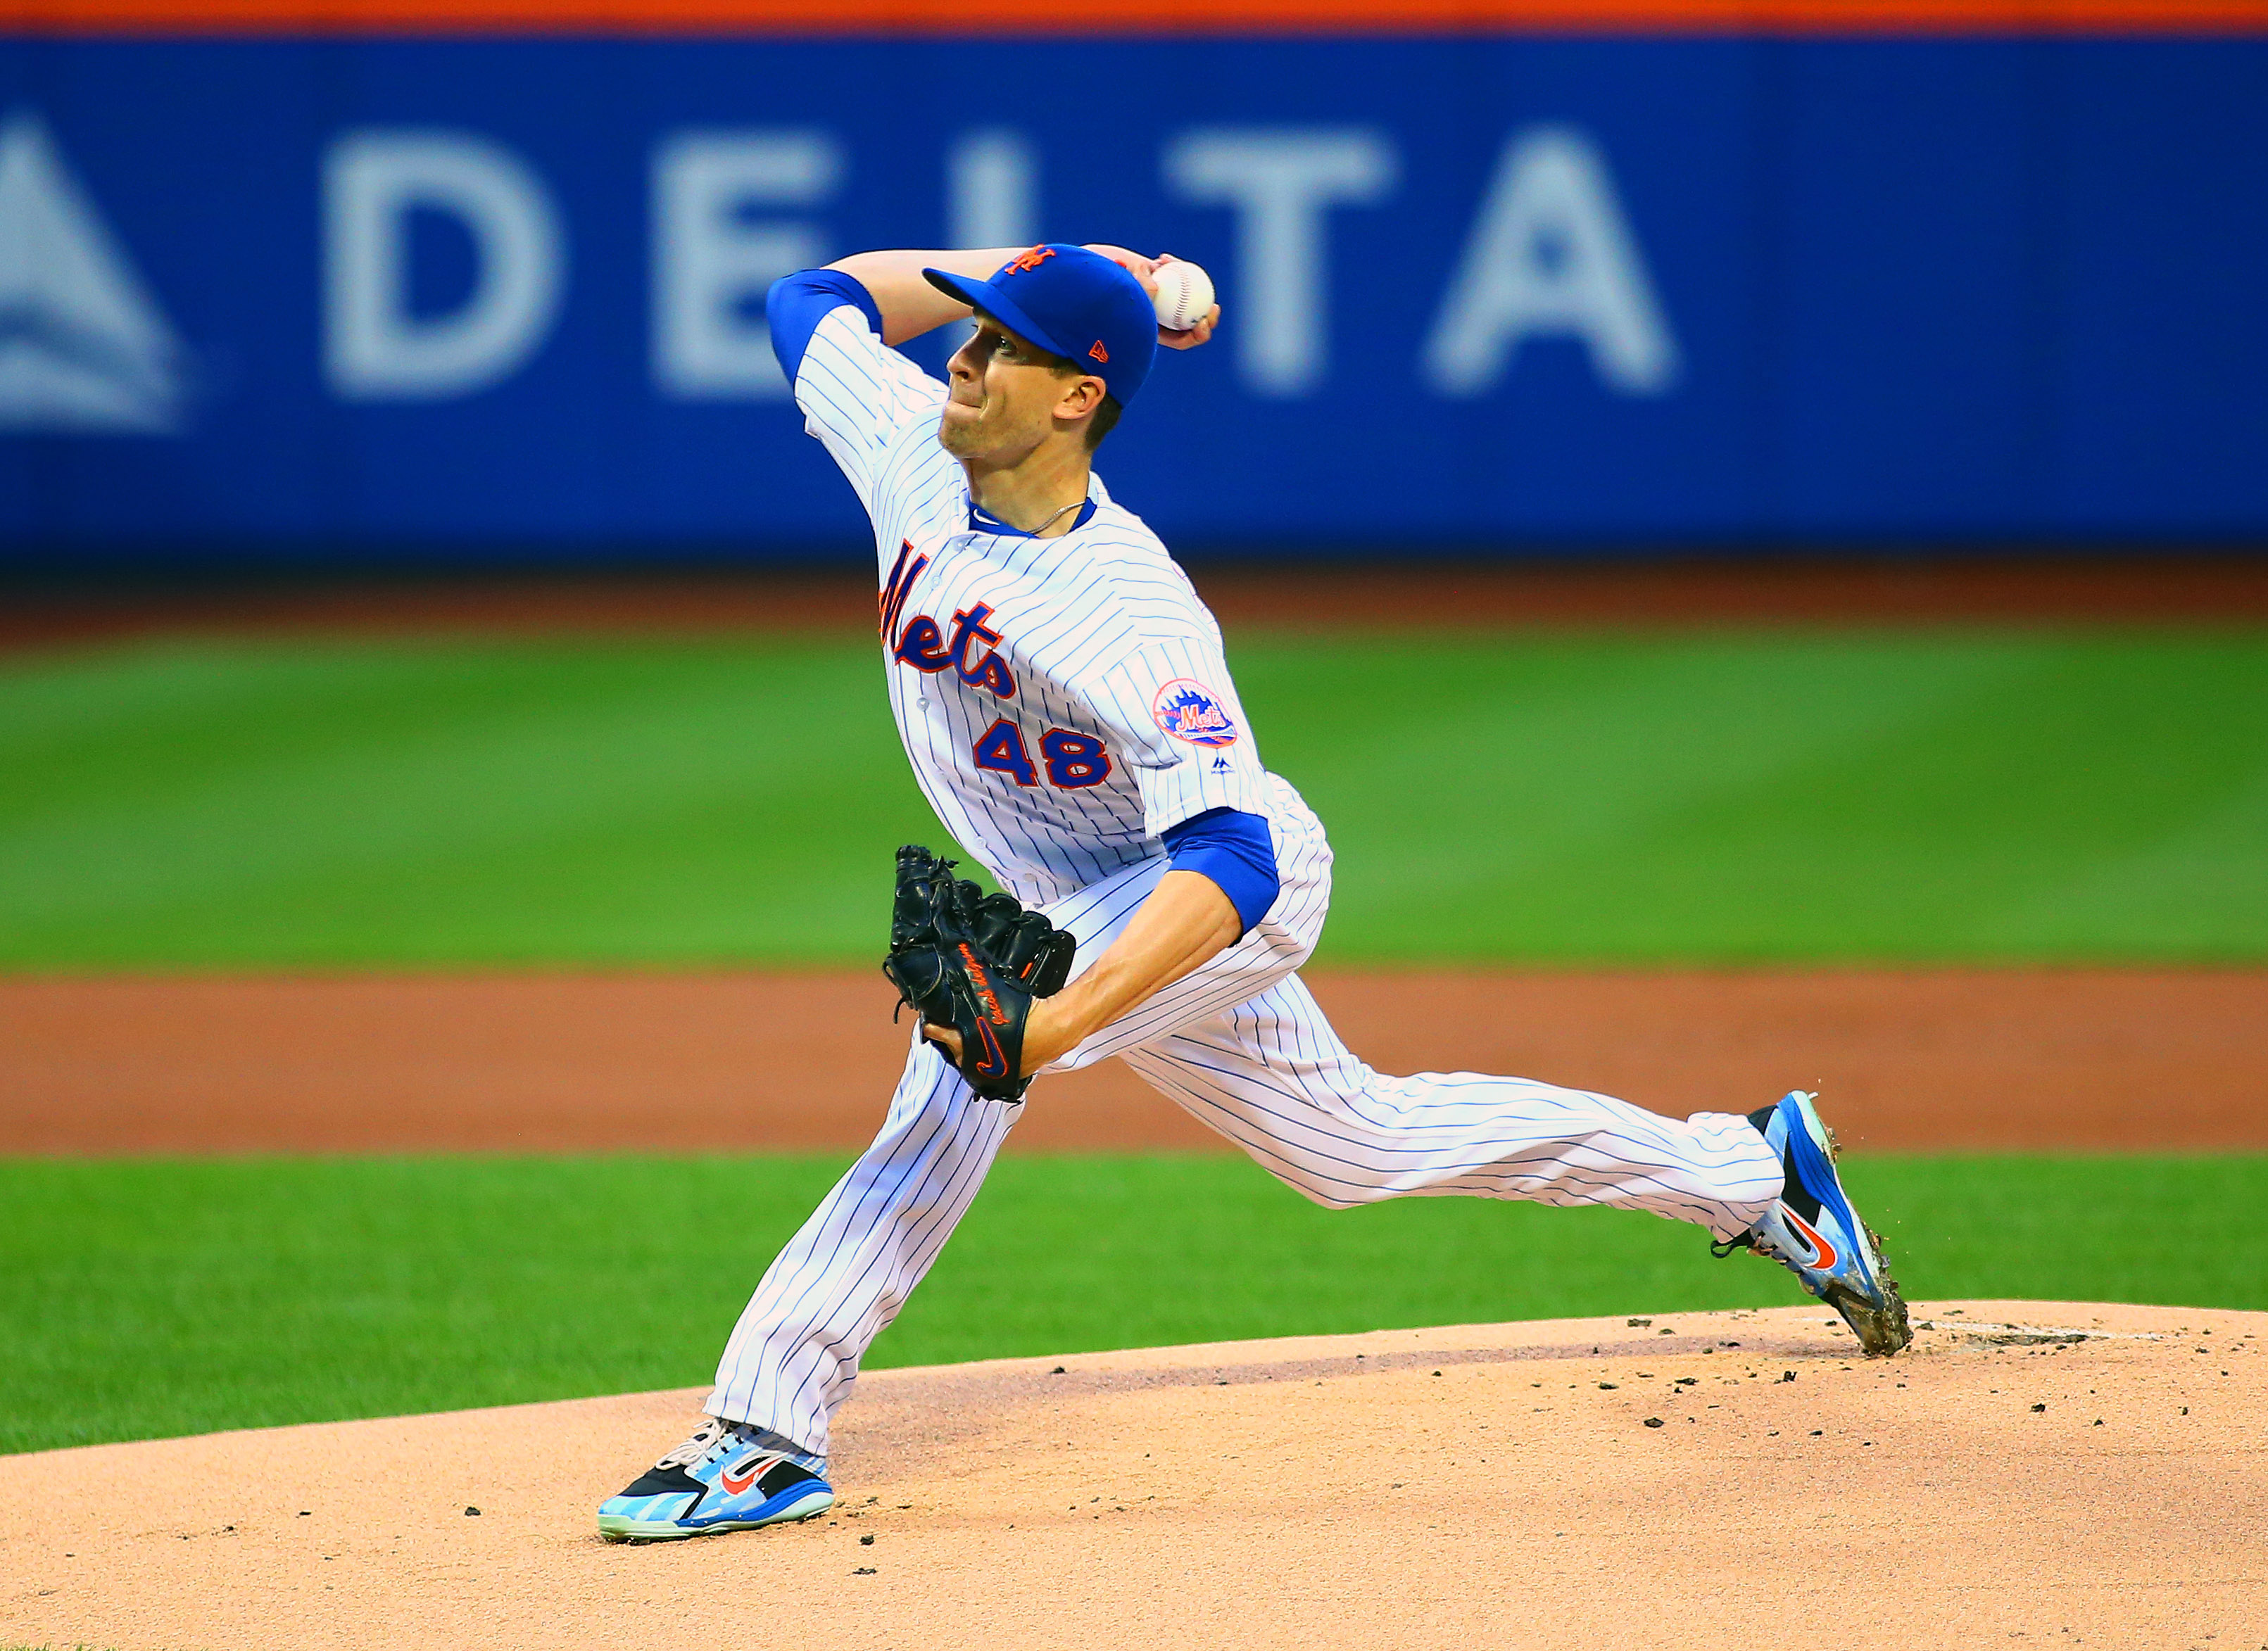 Jacob deGrom Should Be New York Mets' Lone All Star